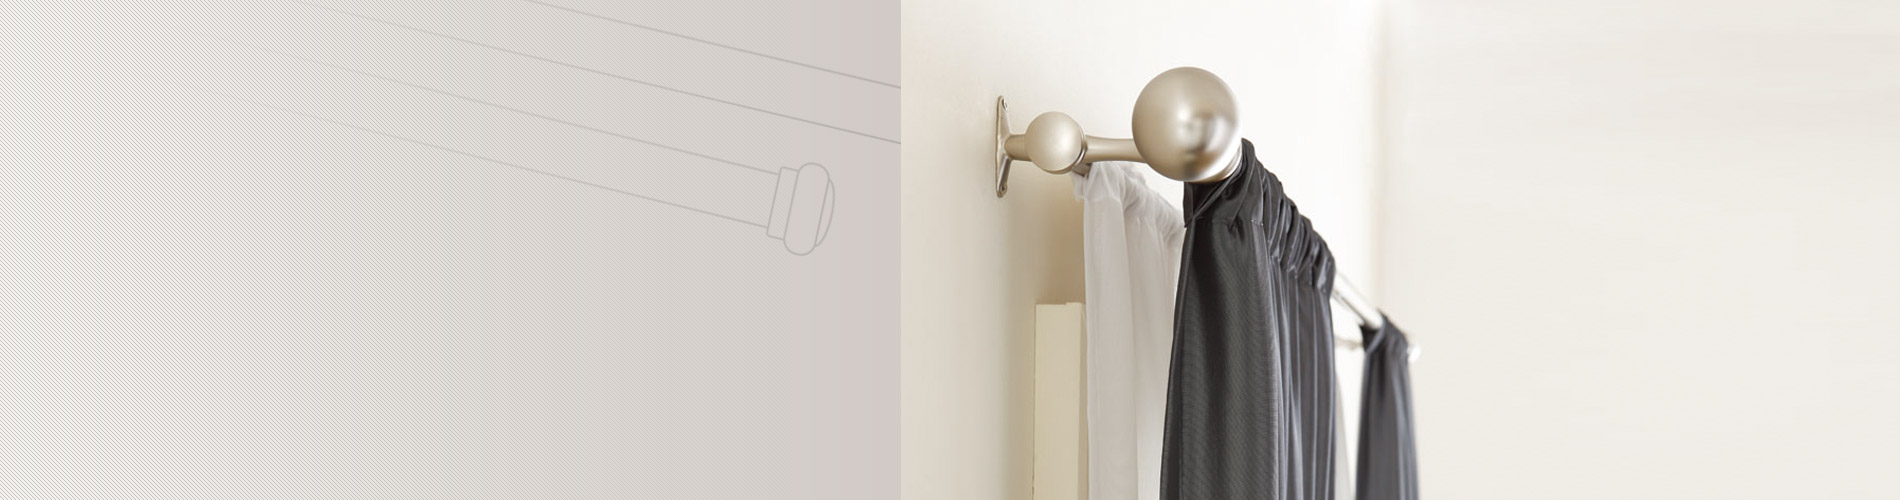 Curtain Rod is always affixed on the wall with decorative finials and brackets. It can operate as telescopic rod, single rod, double rod and swing arm rod.